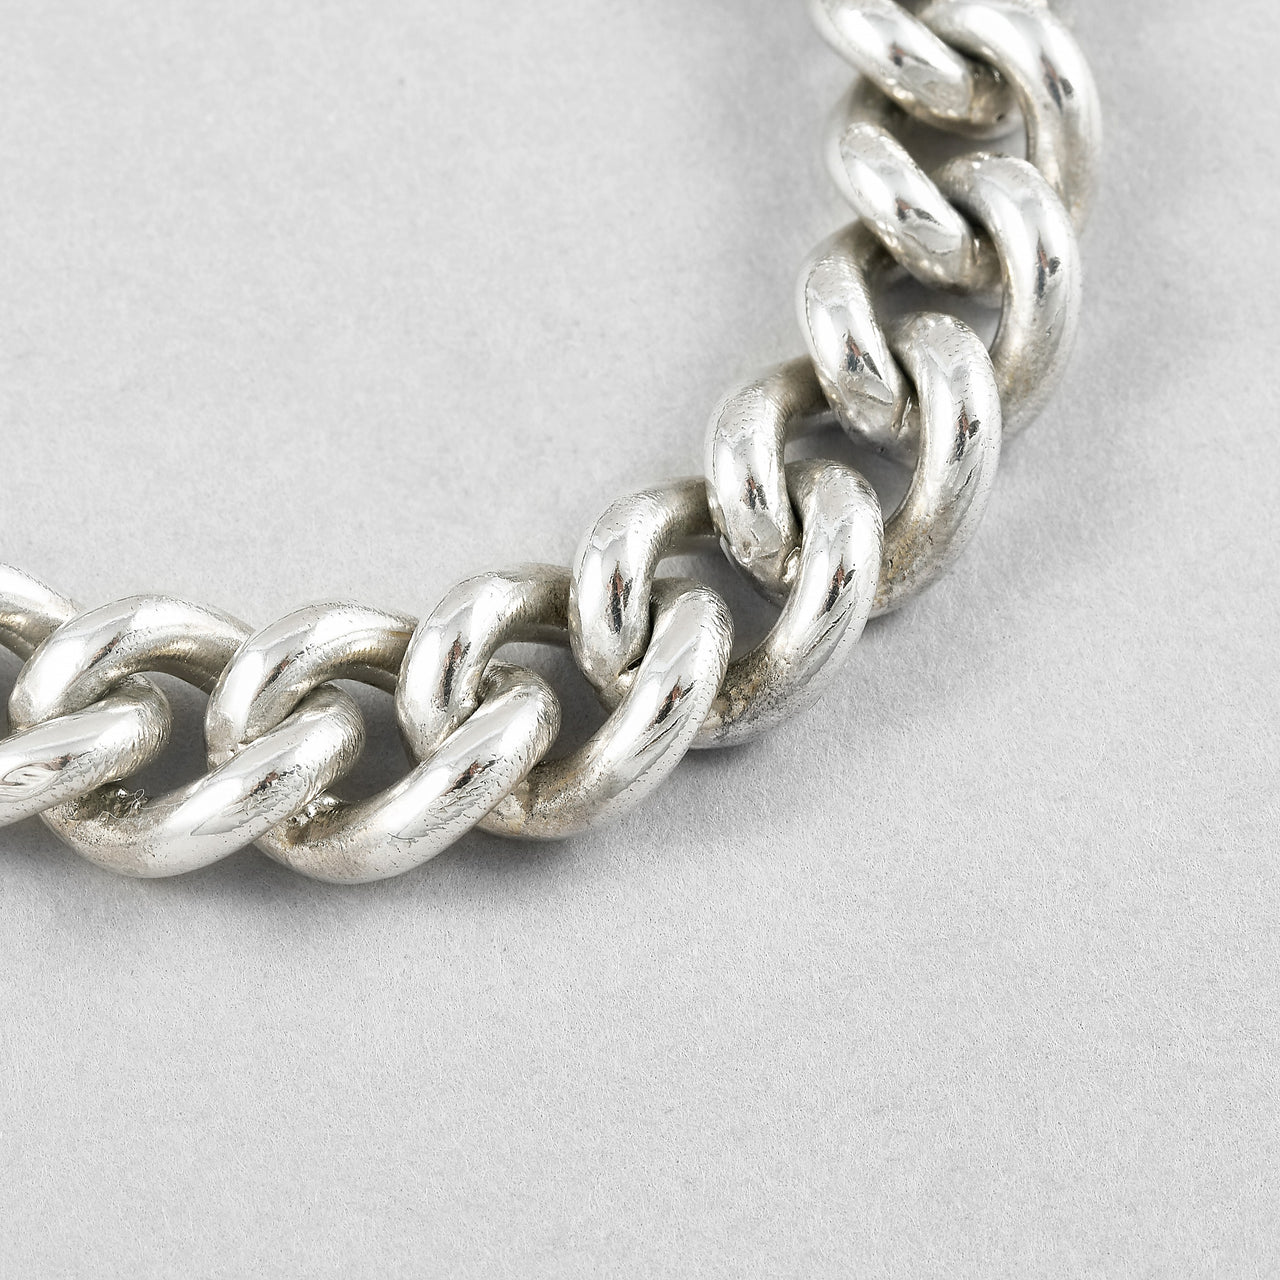 XL Industrial Chain Bracelet